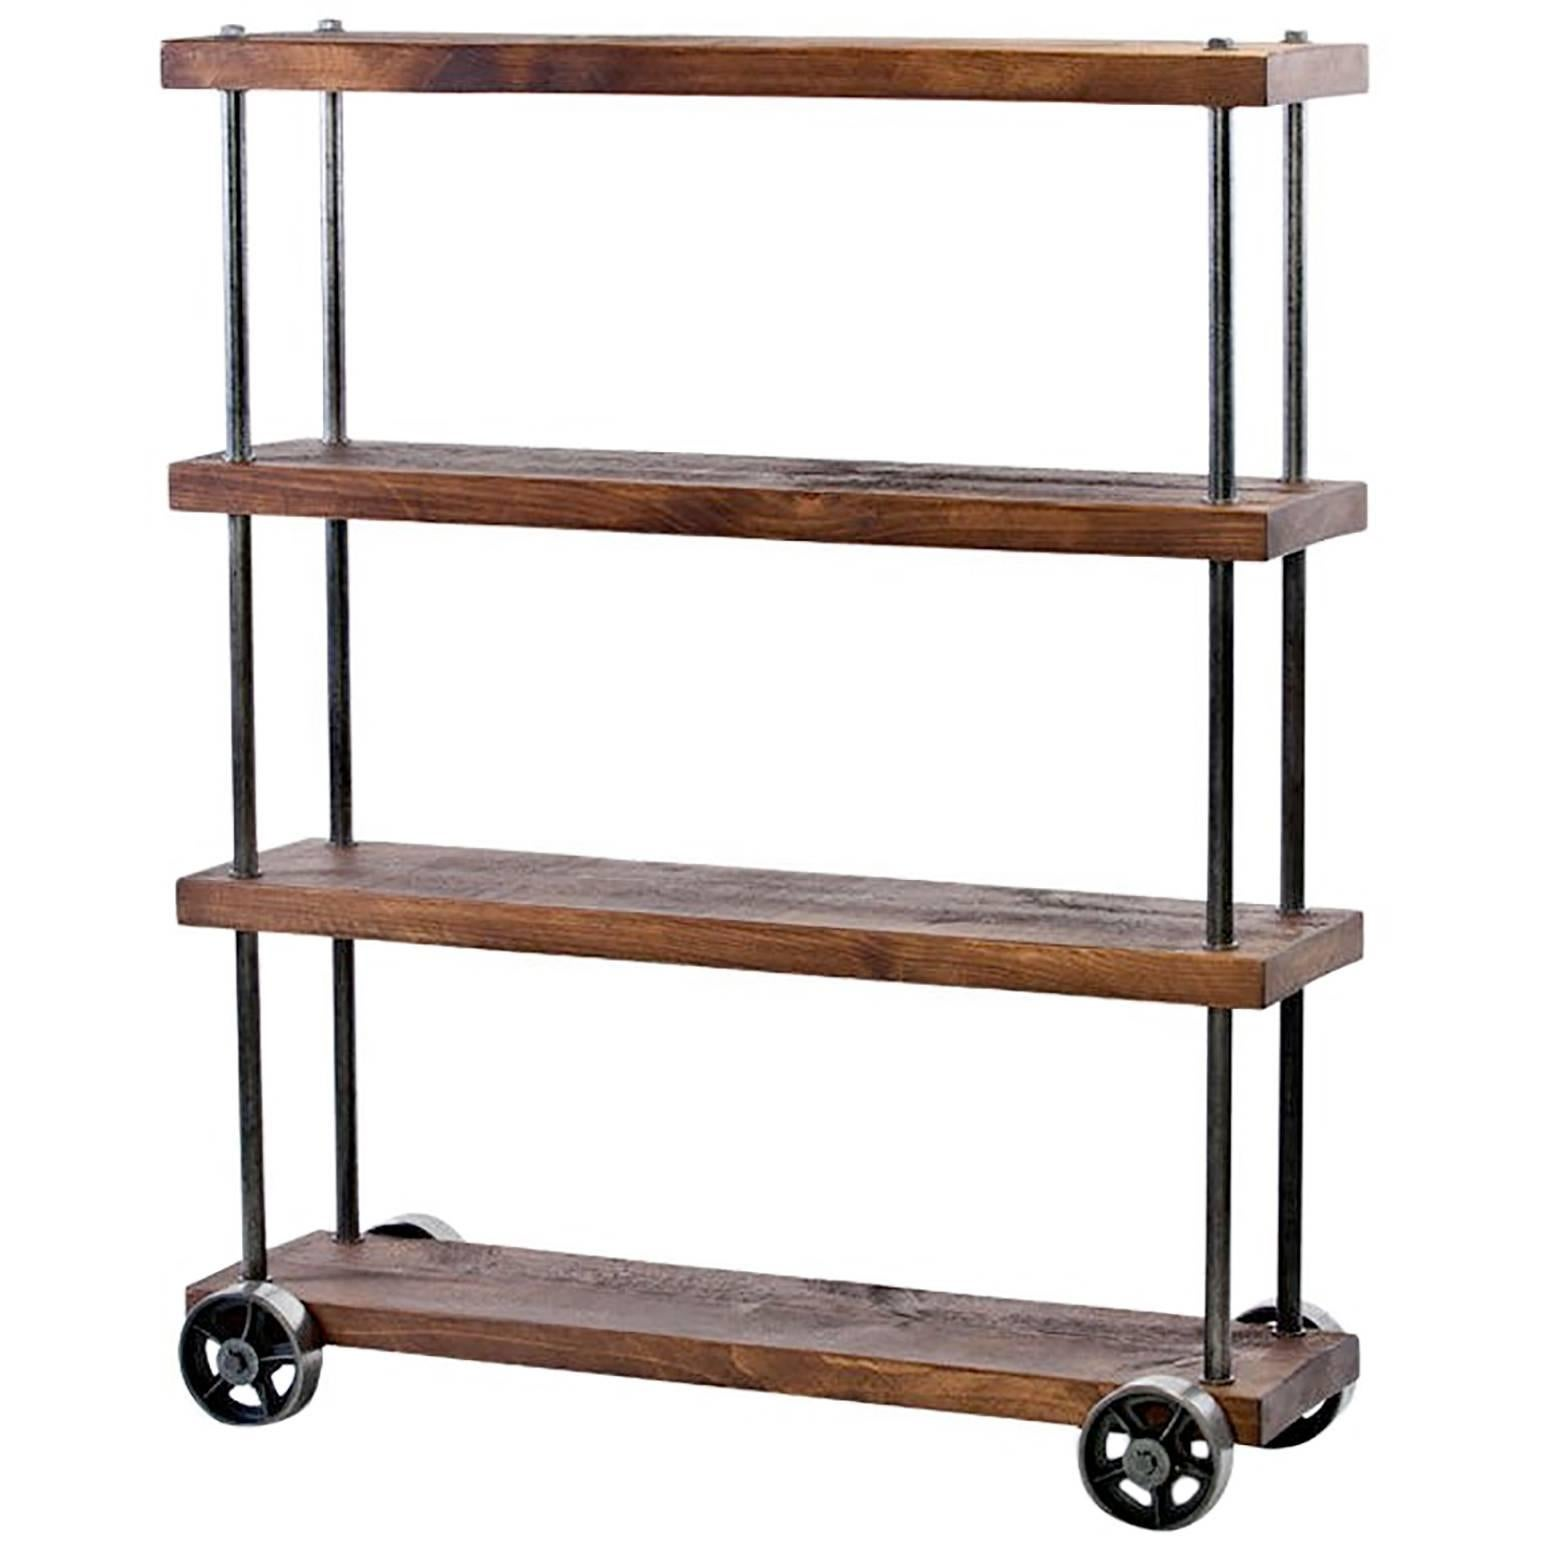 Industrial Rolling Cart Wood And Steel, Iron Storage Shelving On Castors  For Sale